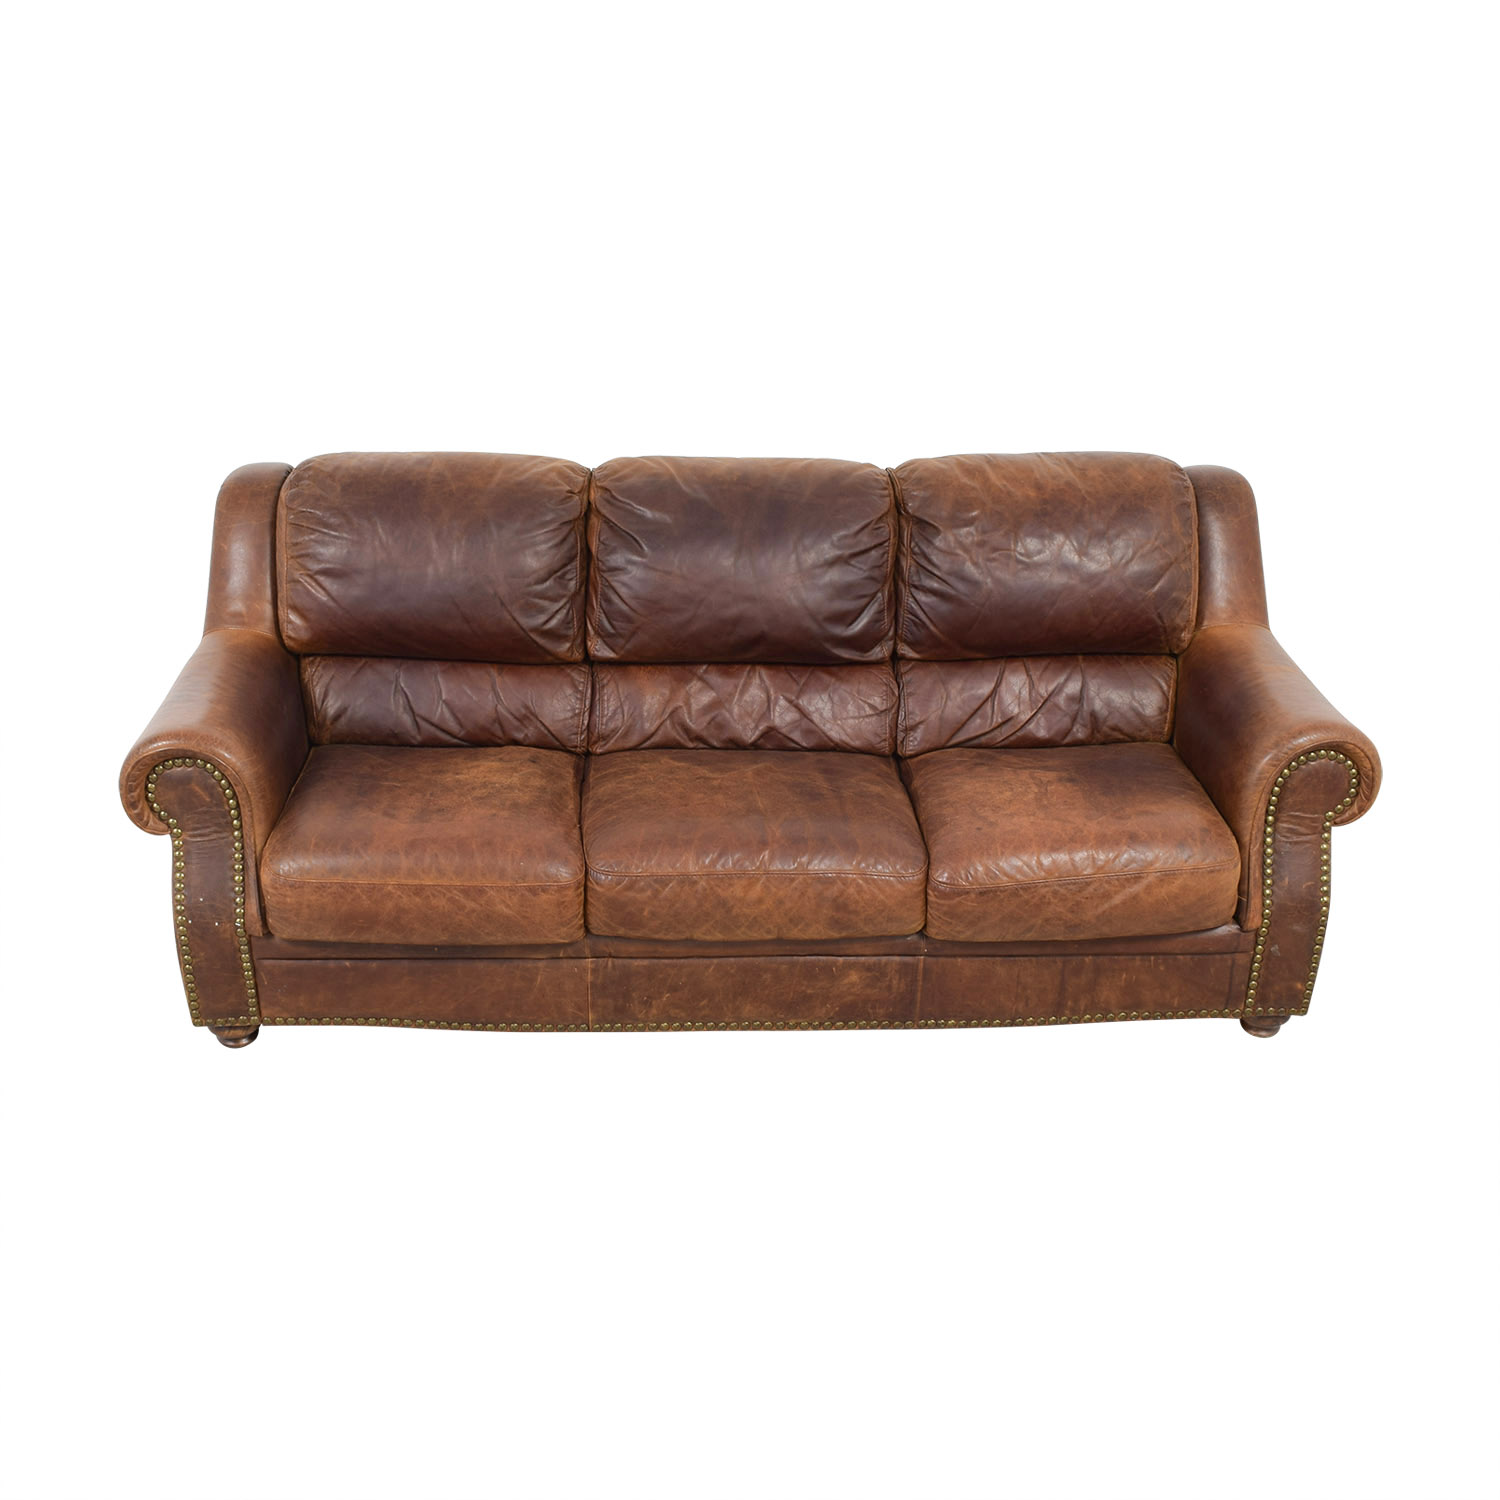 Cushions For Brown Leather Sofas Cushion Sofa Lee Industries Two Cushion Sofa Vivaterra